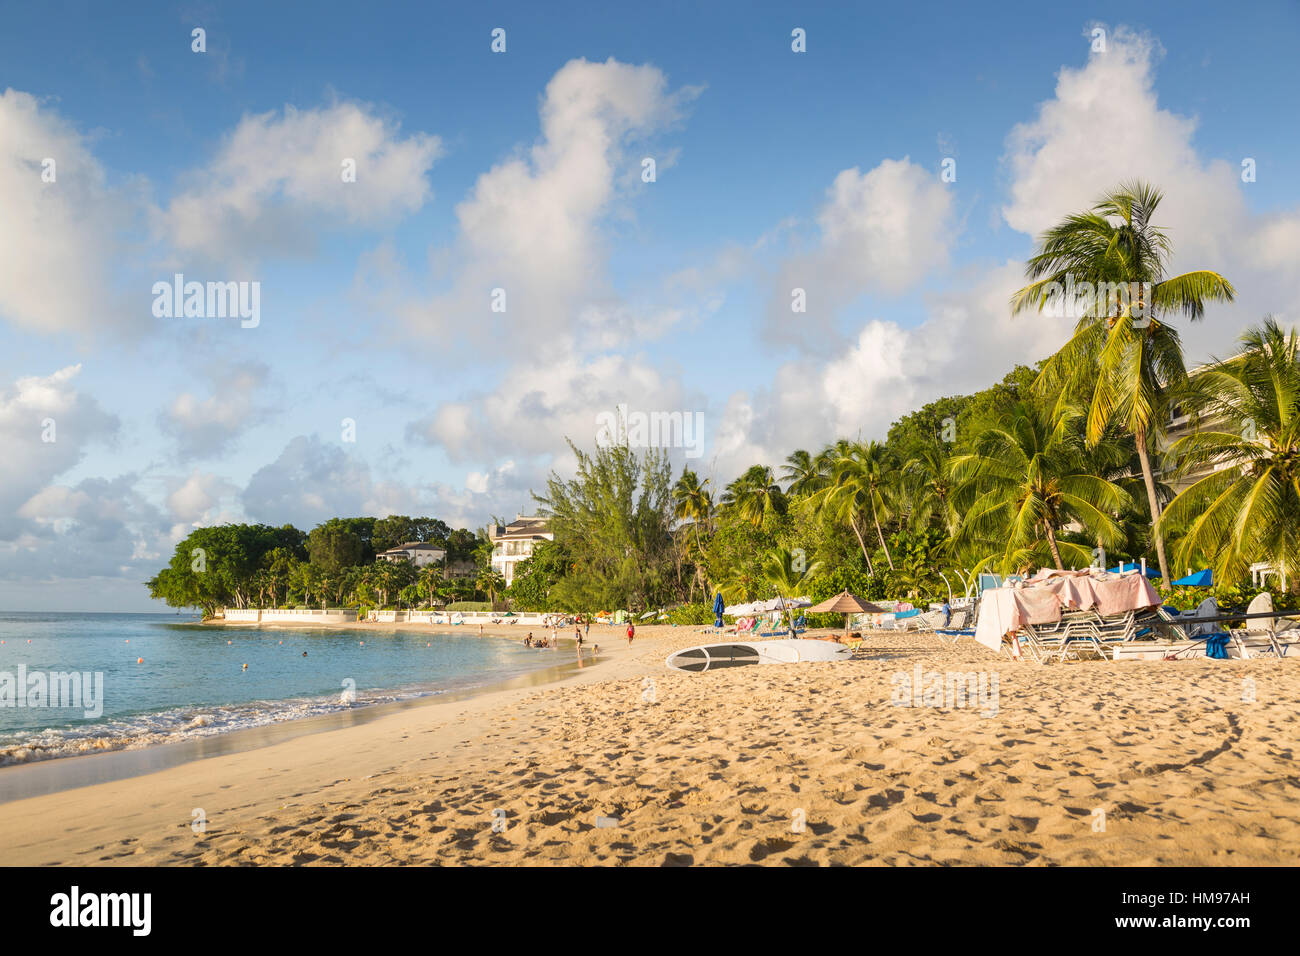 Smugglers Cove Beach, Holetown, St. James, Barbados, West Indies, Caribbean, Central America - Stock Image